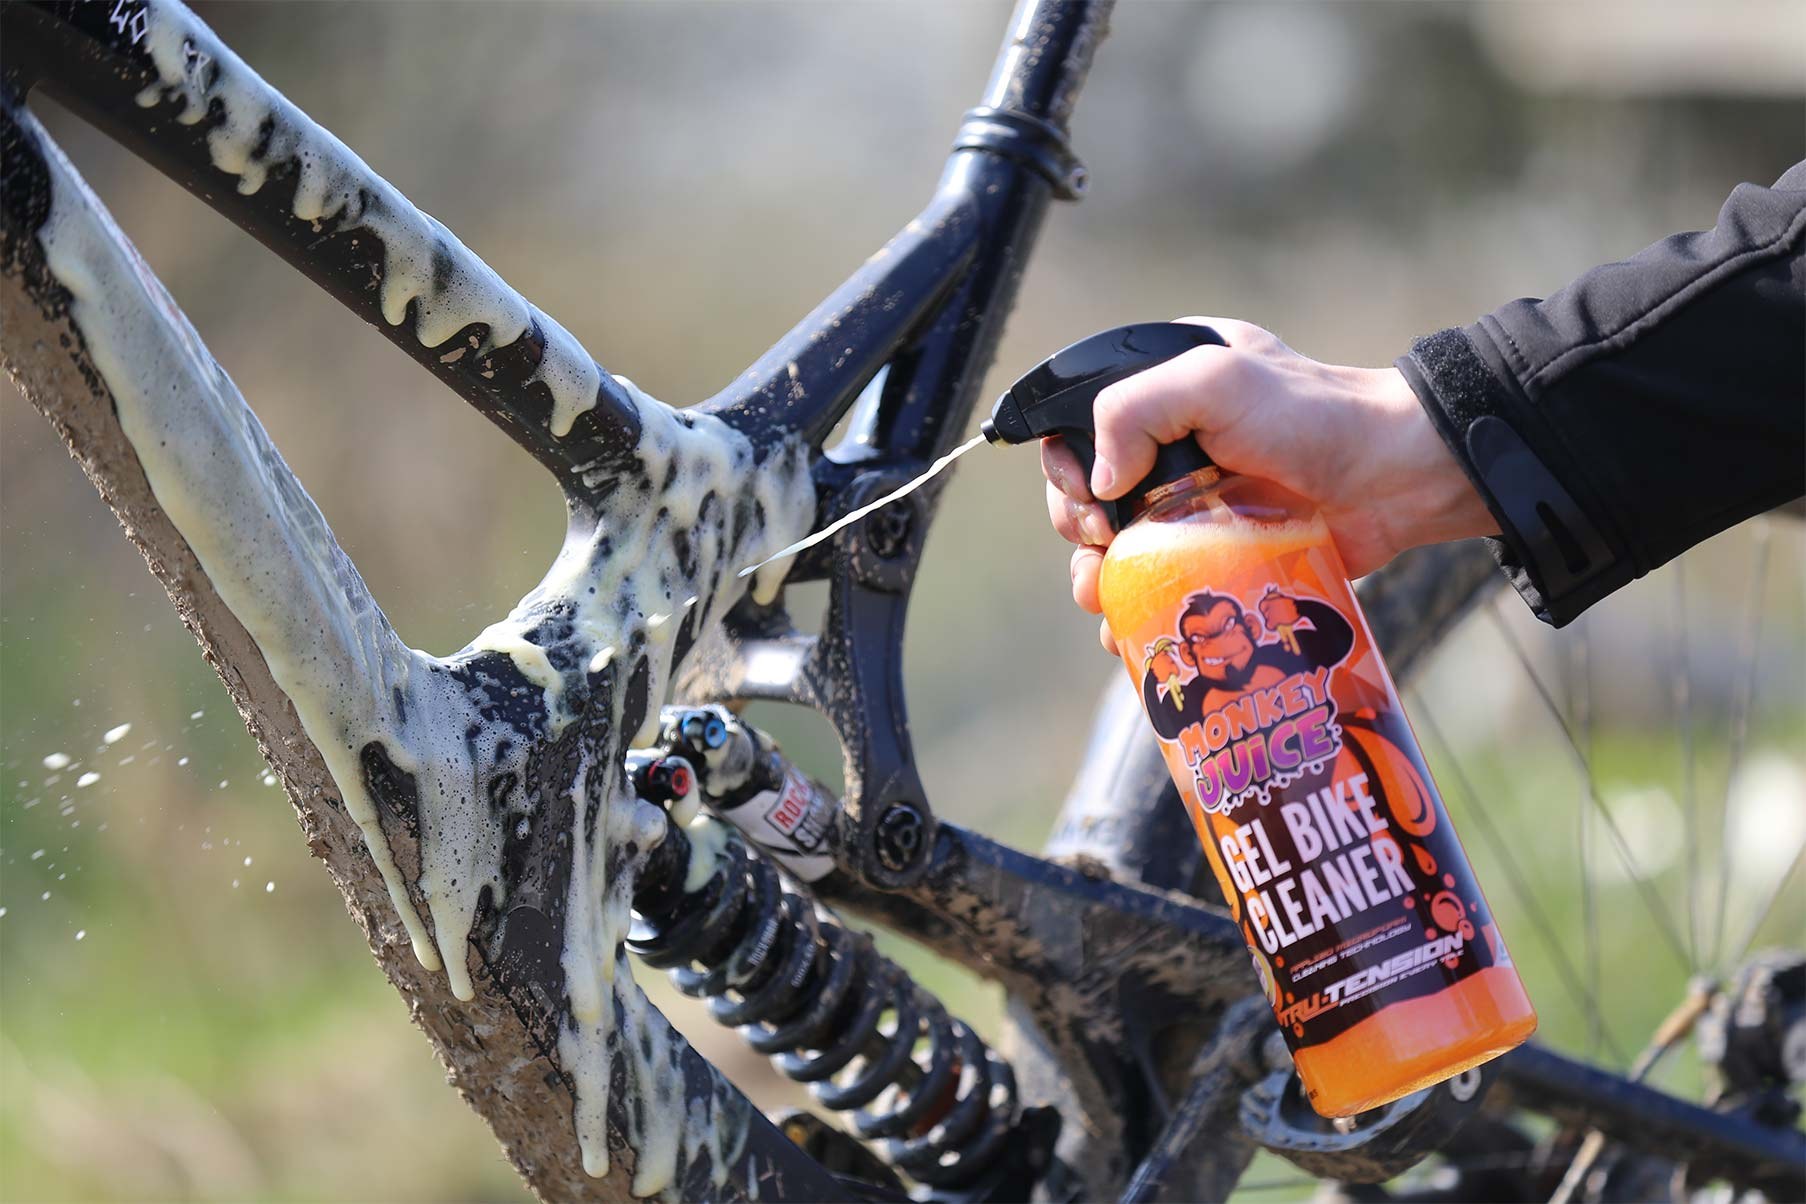 Bike Cleaning Kit What Are The Best Bicycle Cleaning Products